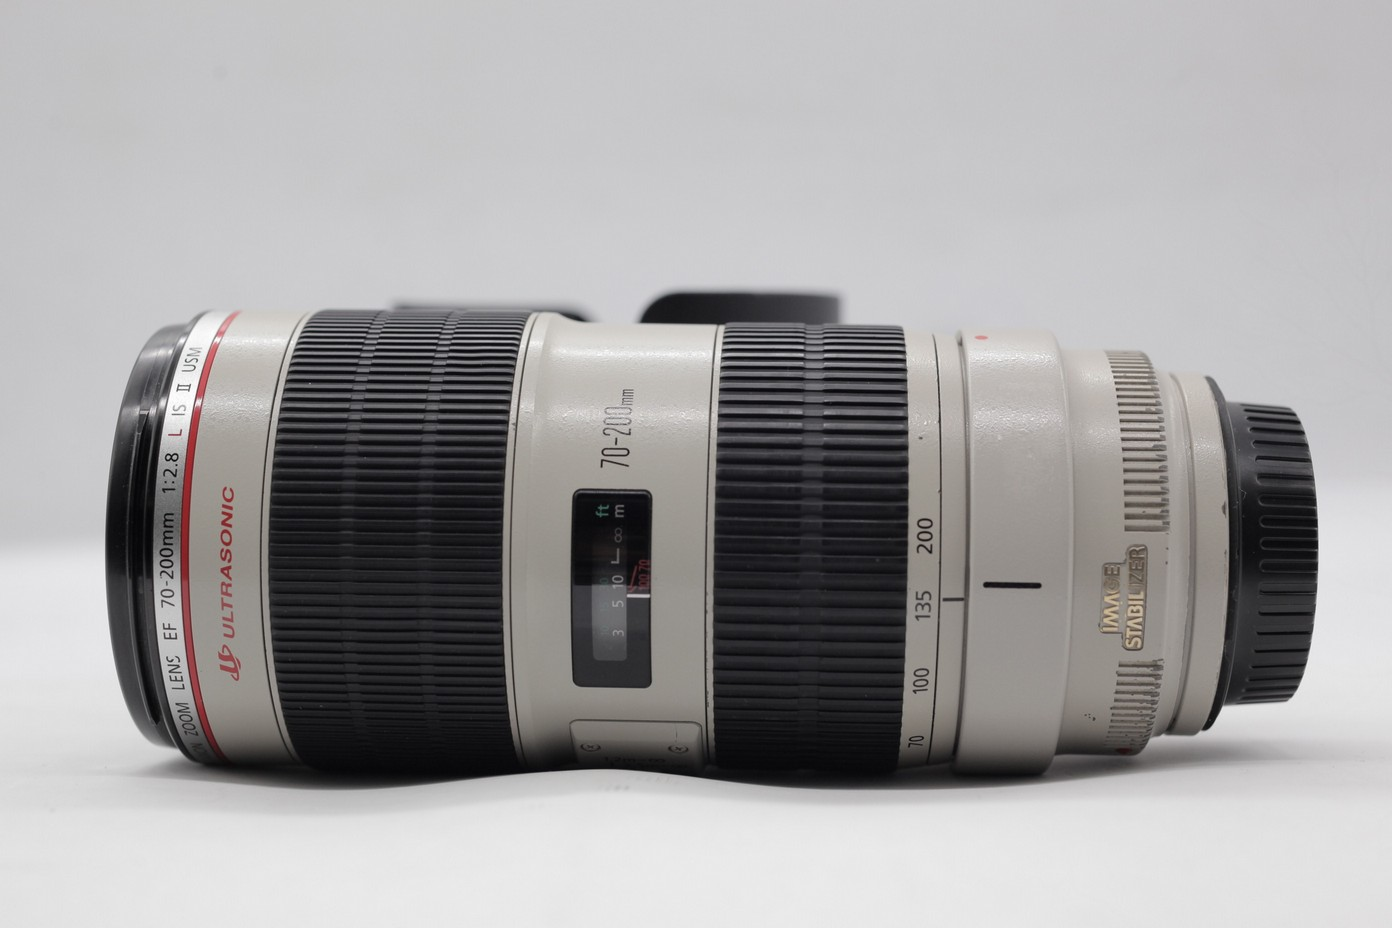 Used - Canon EF 70-200MM F2.8L IS II USM Lens - ( TS - KL )